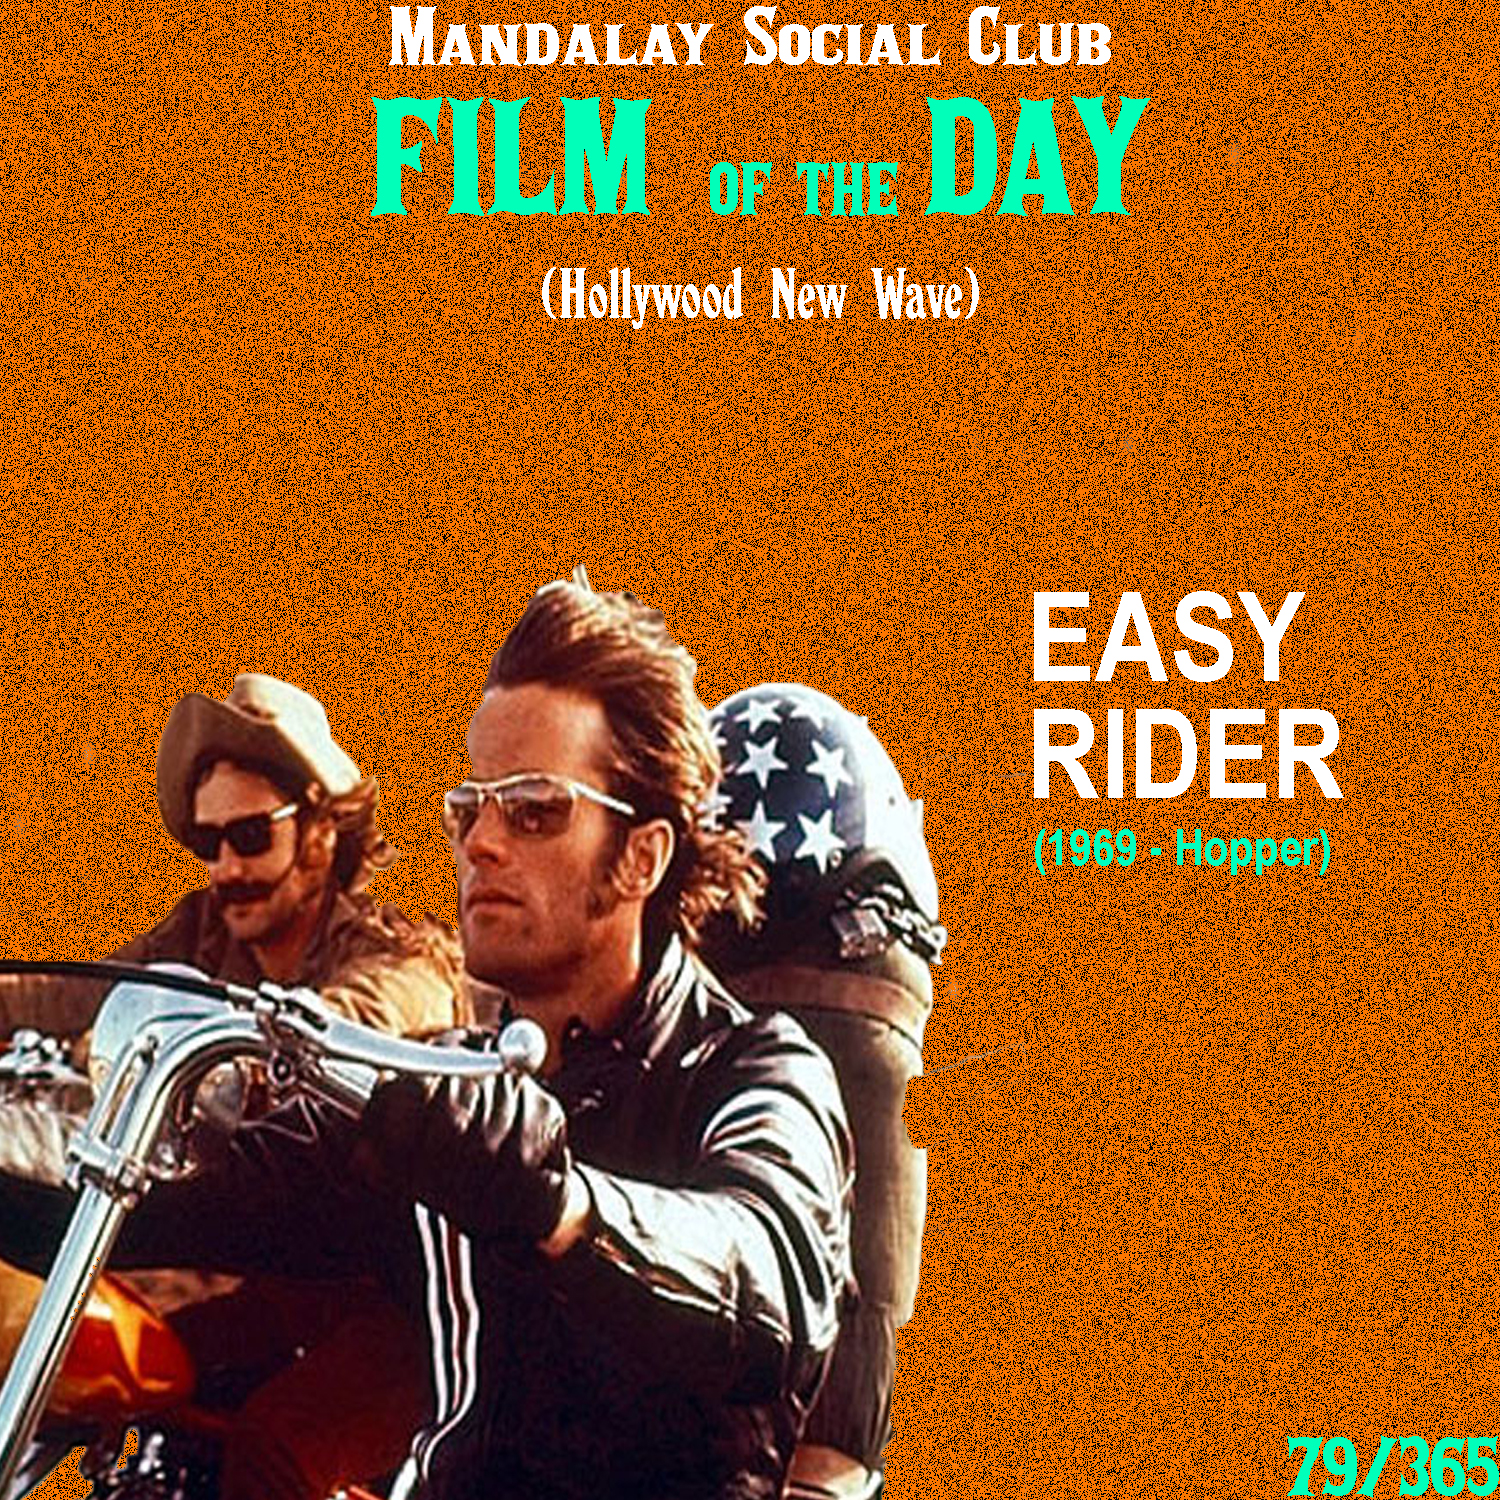 Easy Rider     (dir. Dennis Hopper)   If there was ever a film that defined a movement best, it would have to be  Easy Rider .  Easy Rider  embodies all of the qualities of the Hollywood New Wave with it's blatant display of sex, drugs, and most importantly, true freedom from the establishment.  Peter Fonda and Dennis Hopper star as a couple of bikers who make a drug score in Los Angeles and start heading east to New Orleans for Mardi Gras before heading down to Florida to 'retire.' Jack Nicholson also stars as a Texas lawyer with a bit of a drinking problem that the guys meet and take with them to New Orleans. As they make their way across the country in search of freedom, they start to realize that freedom is much harder to come across than they thought.  Dennis Hopper, Peter Fonda, and Jack Nicholson all got starts under Roger Corman and in fact, the three of them worked together just two years prior on  The Trip , which I consider a strong pre-cursor to  Easy Rider  and the New Hollywood movement all together.   Easy Rider , like  Bonnie & Clyde , was a film that audiences could relate to and call their own. Hopper and Fonda's characters were more than just a couple of bikers. They were the counter-culture, searching for freedom in the 'Land of the Free.'    5/5     WATCH: Hulu